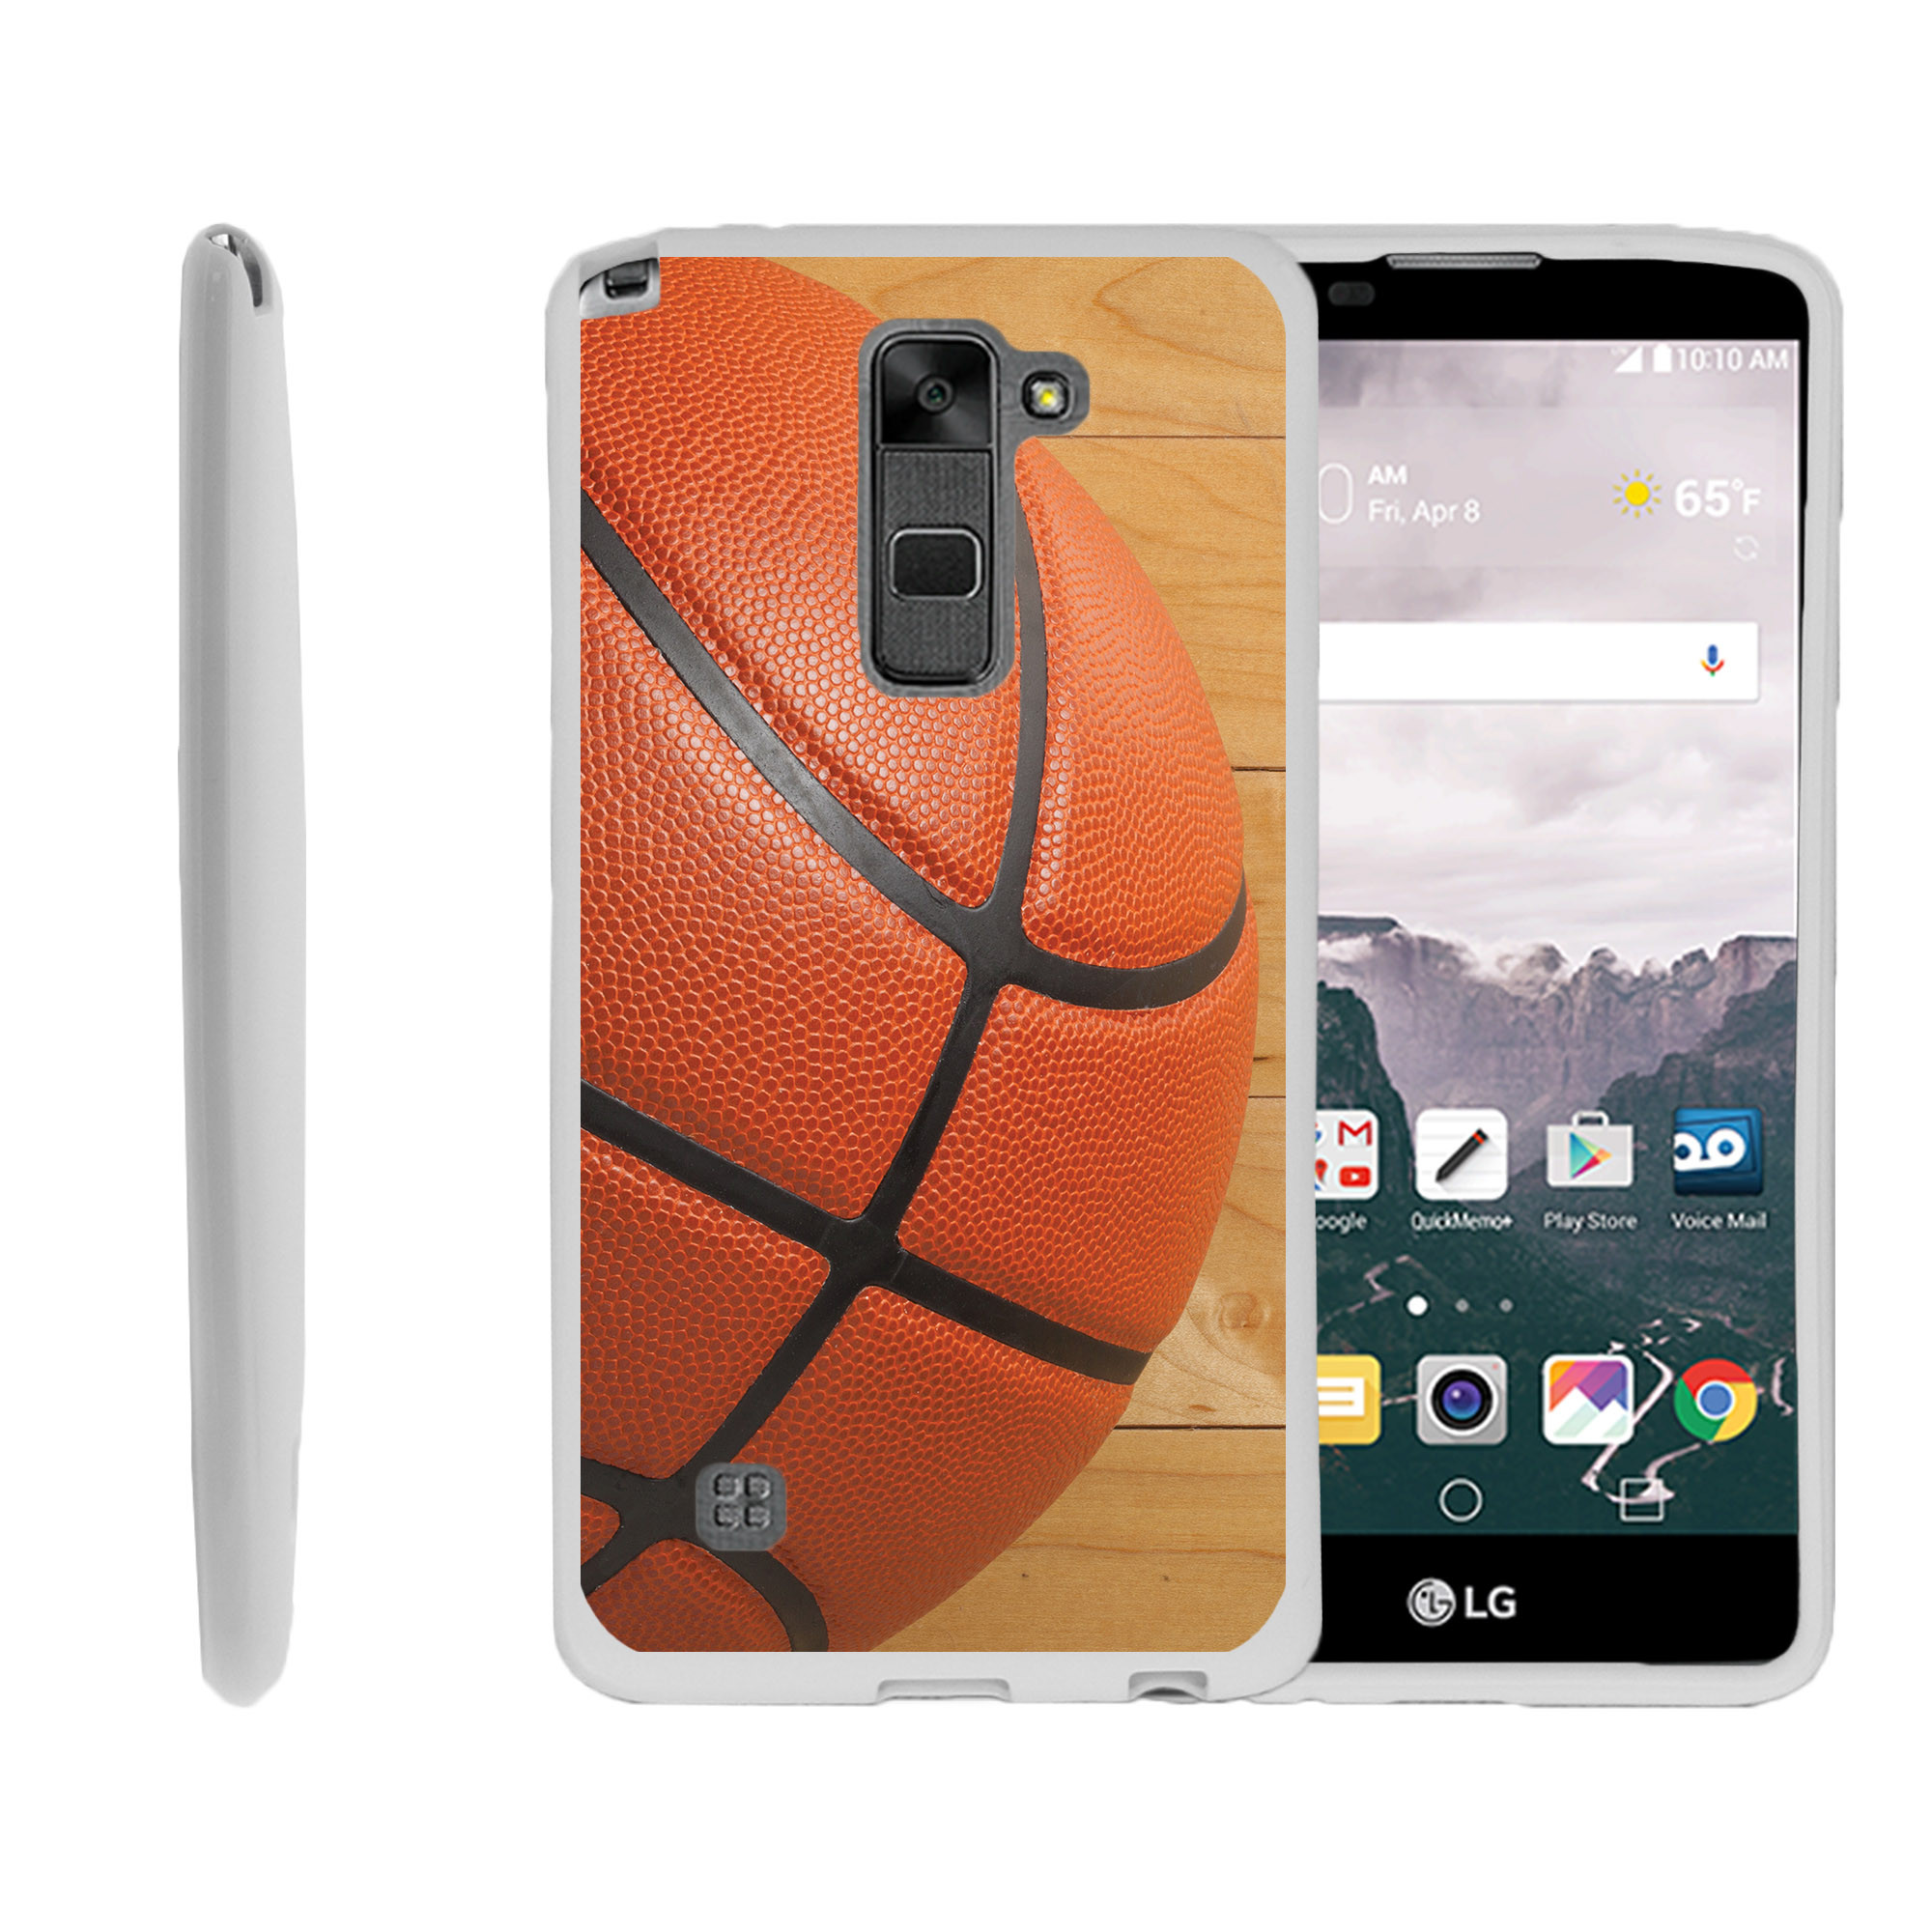 LG G Stylo 2, LG G Stylus 2 LS775, Flexible Case [FLEX FORCE] Slim Durable TPU Sleek Bumper with Unique Designs - Close up Of Basketball